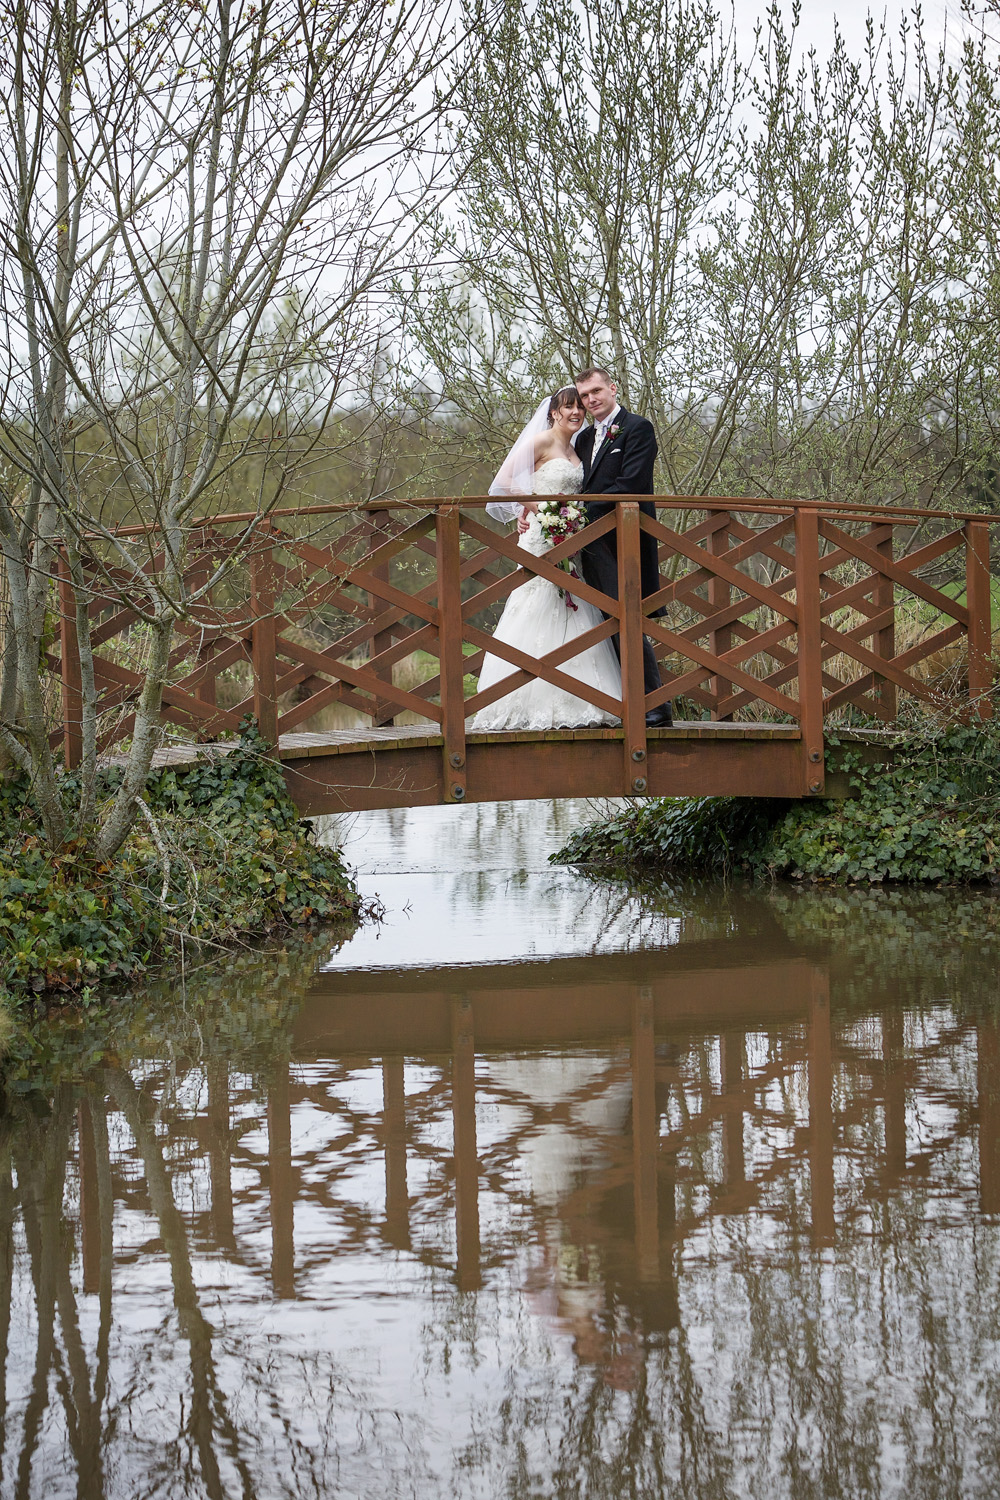 Sandford_Springs_Wedding_Photographer_Newbury_020.jpg